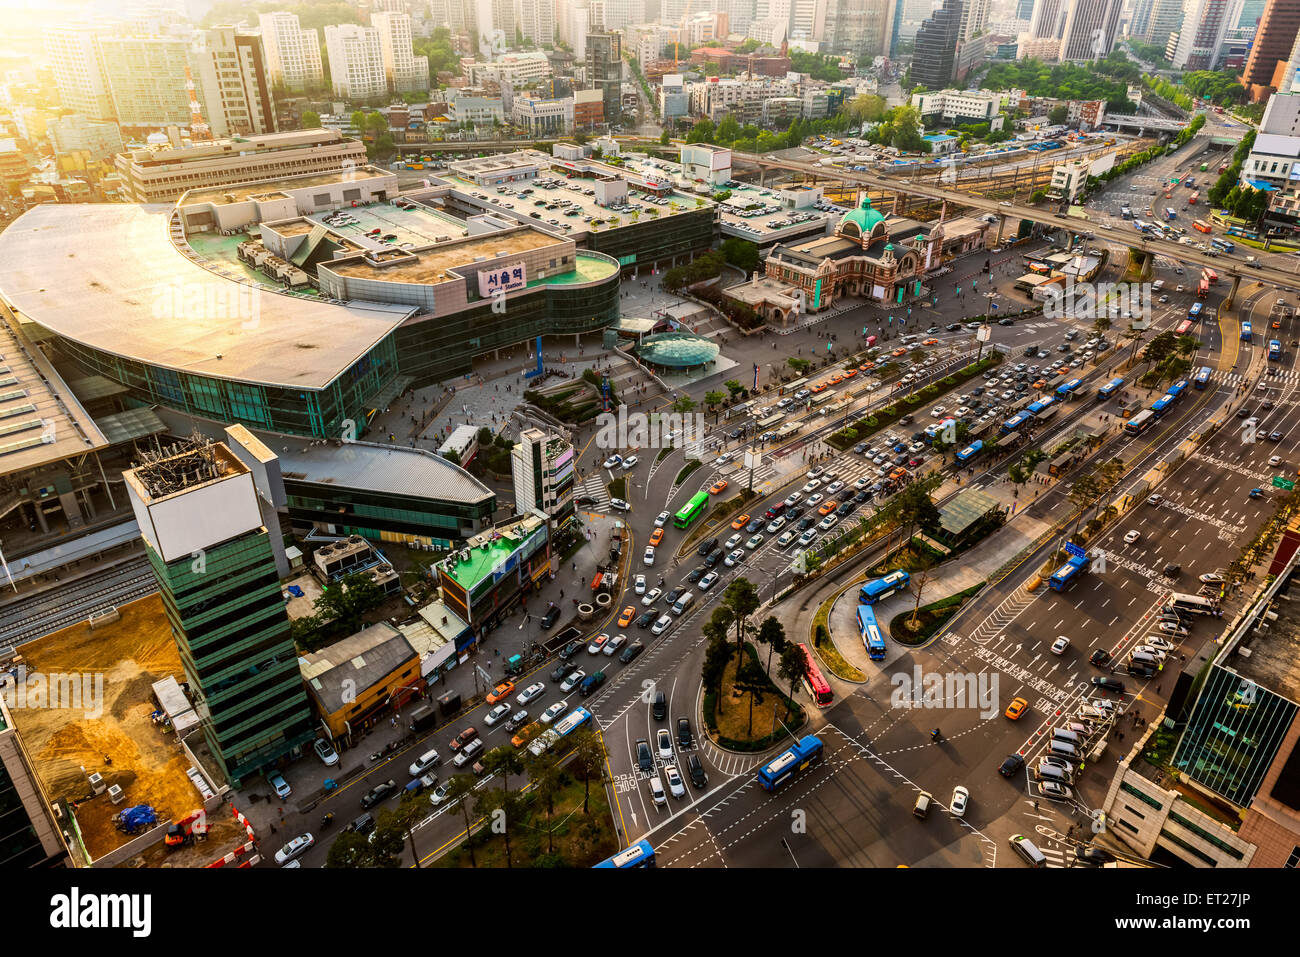 Seoul Station in late afternoon during rush hour. - Stock Image